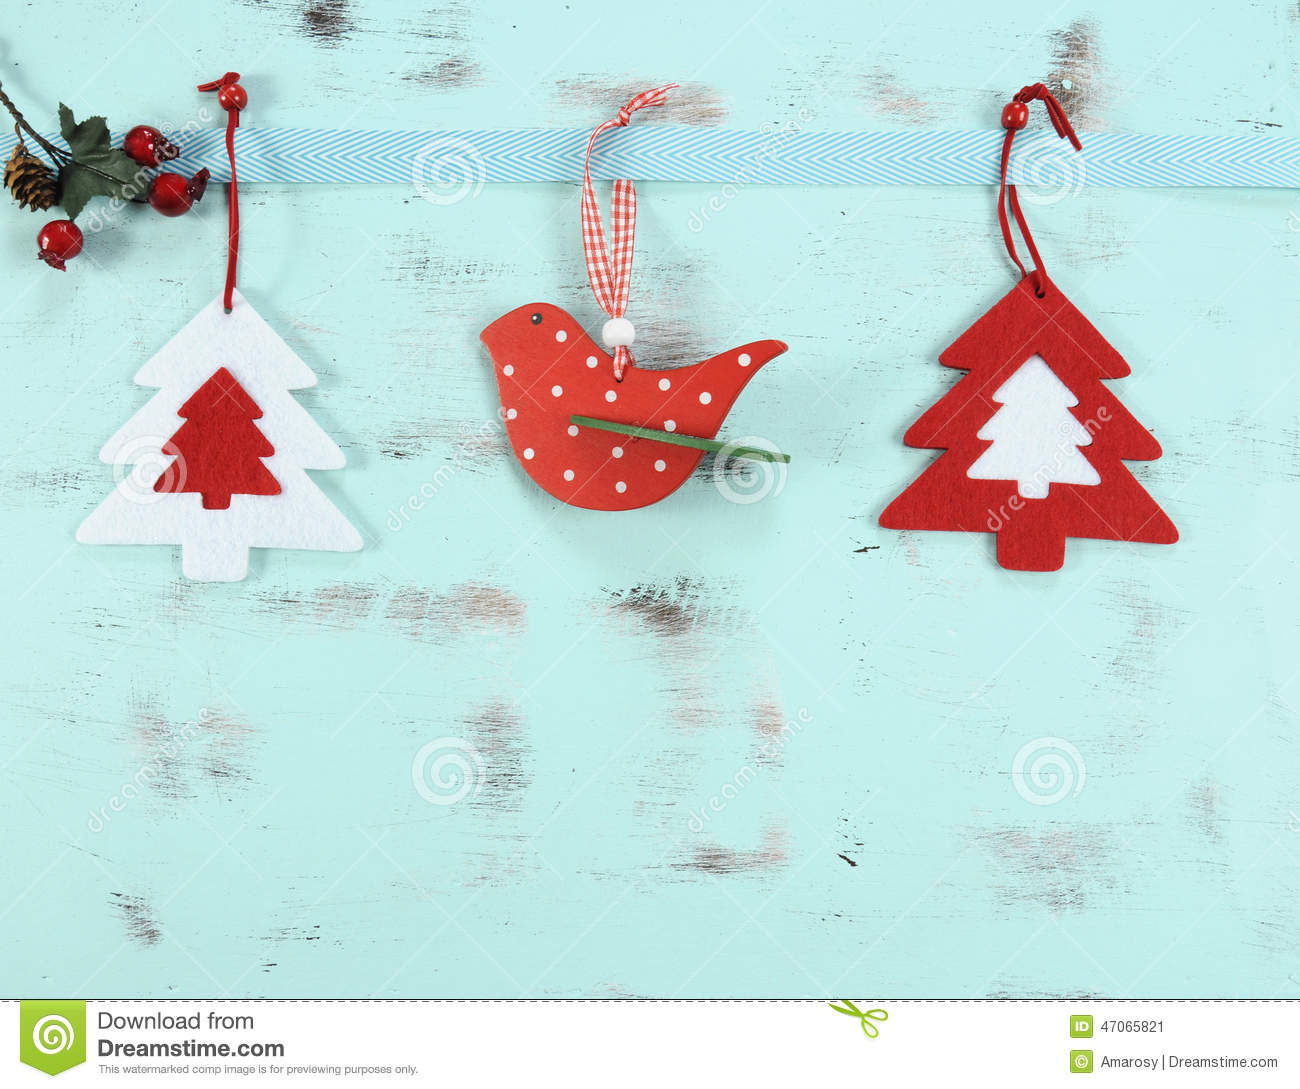 Modern red and white Christmas hanging bird and tree decorations on aqua blue wood background.